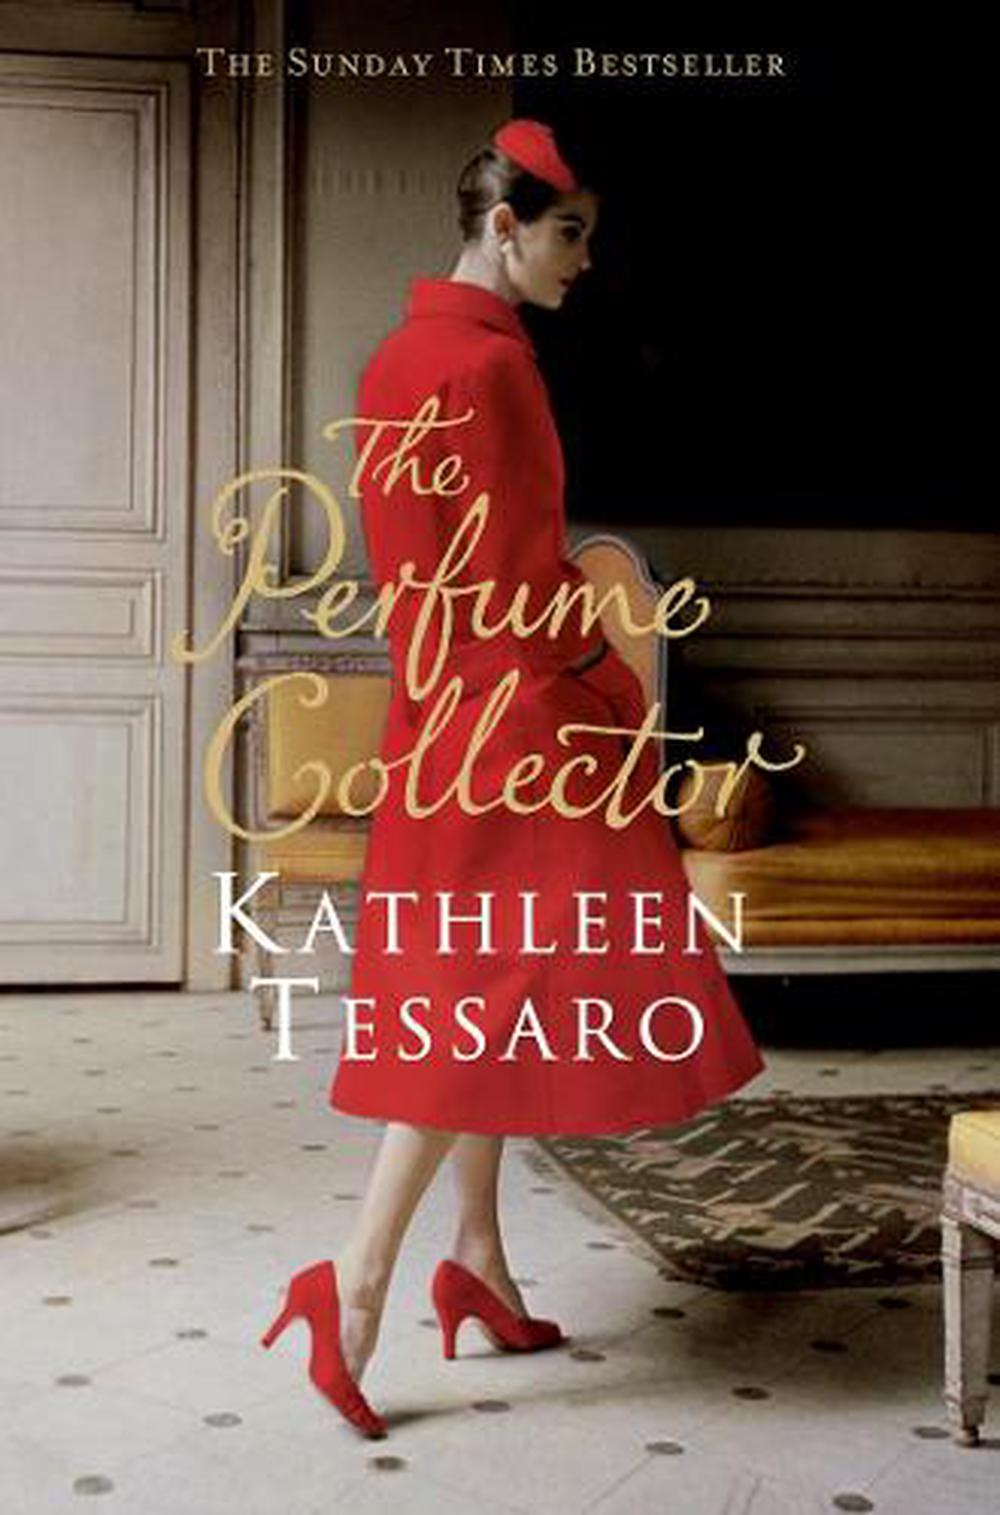 Discussion on this topic: The Perfume Collector by Kathleen Tessaro, the-perfume-collector-by-kathleen-tessaro/